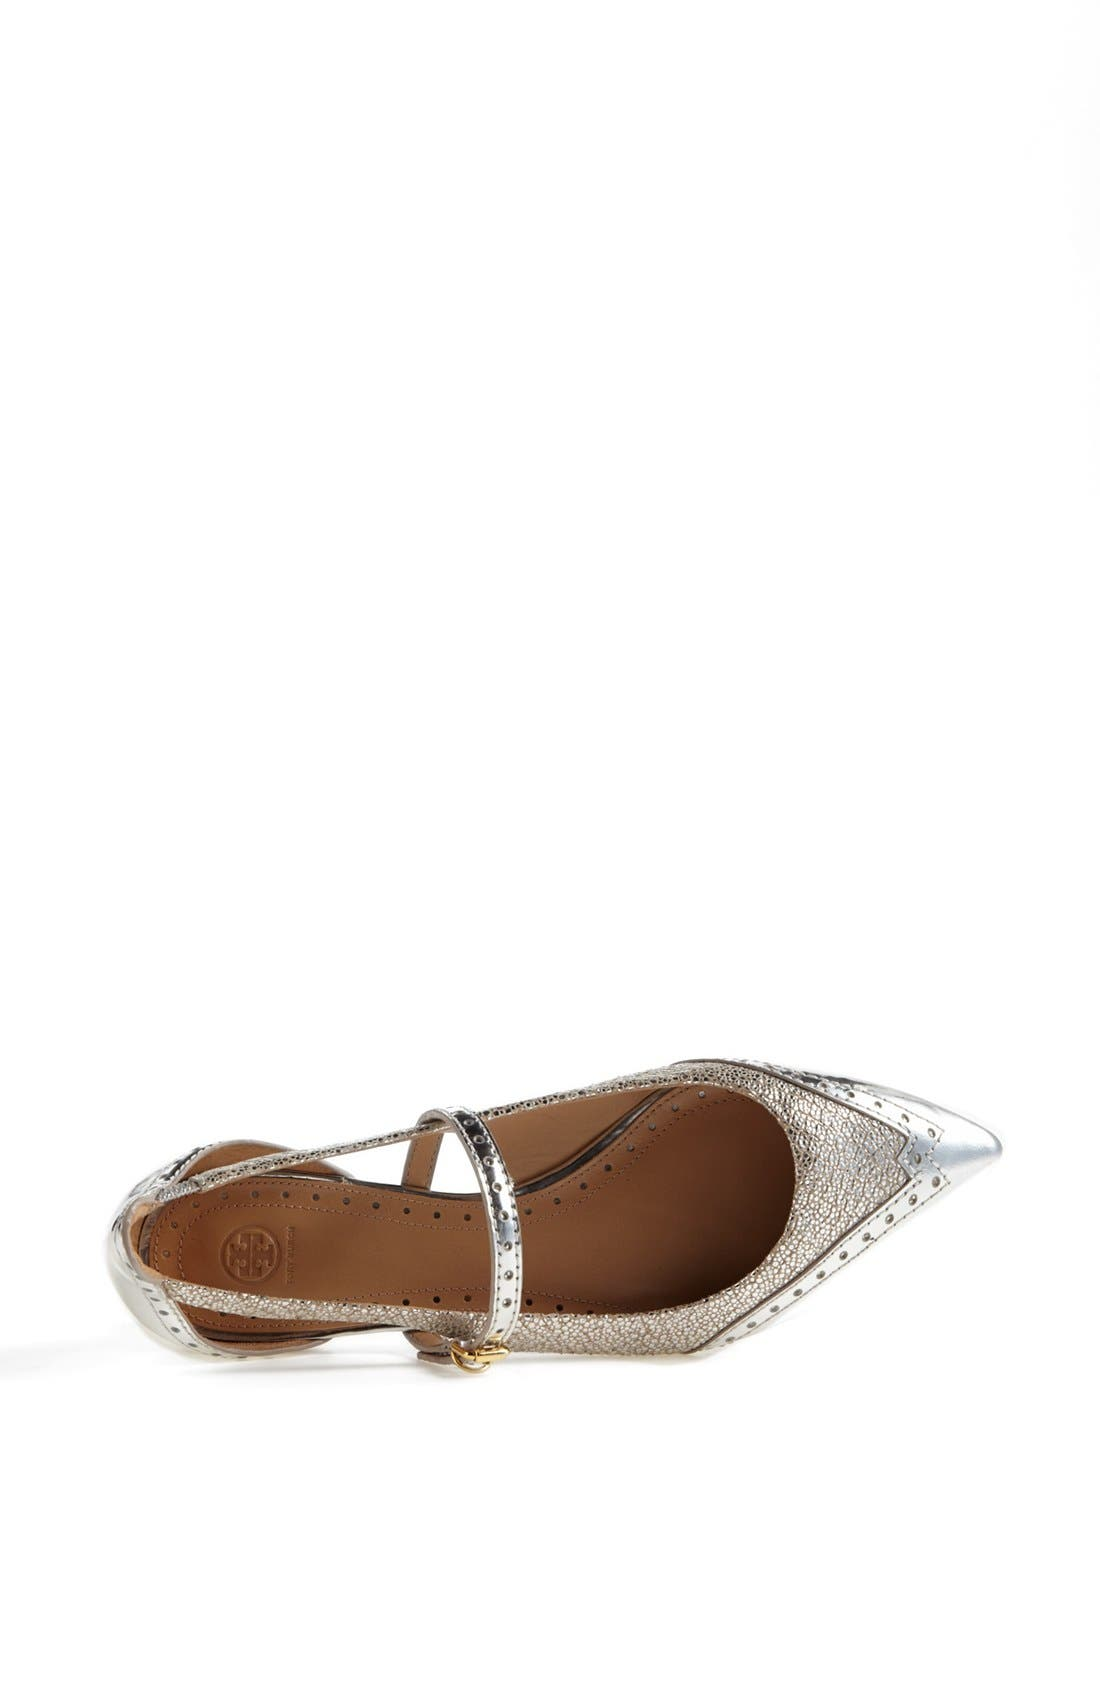 Alternate Image 3  - Tory Burch 'Bernadette' Flat